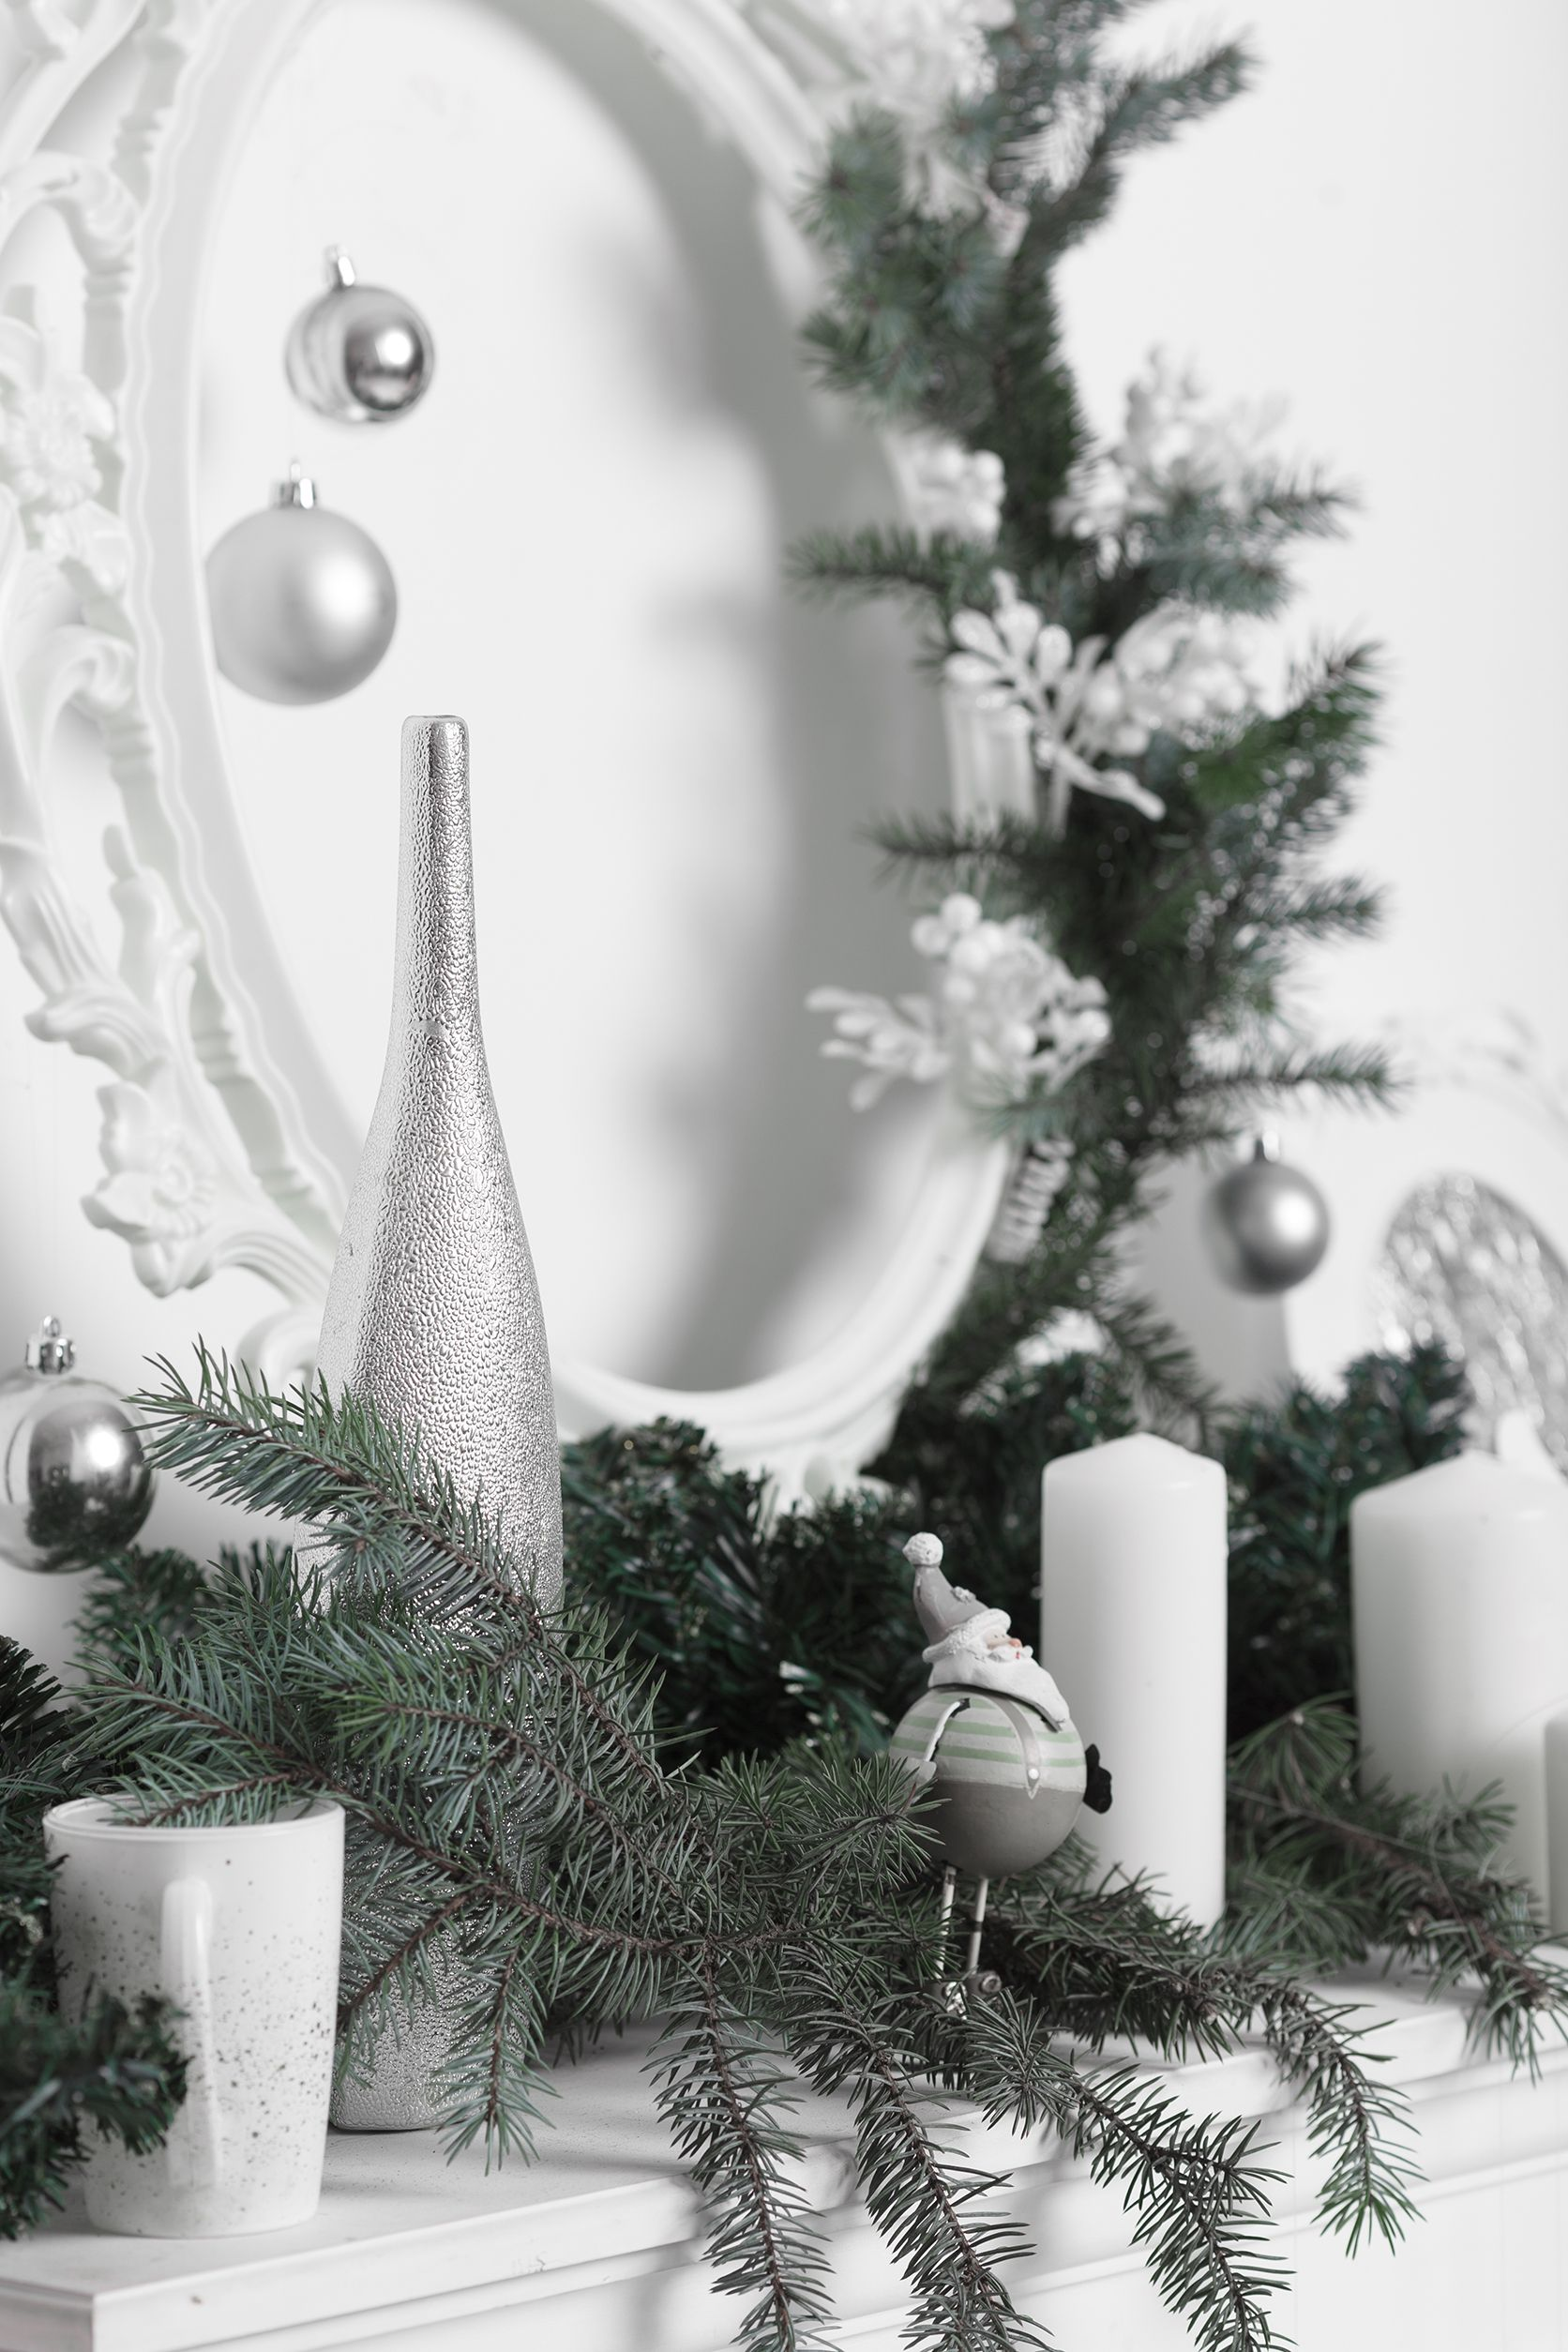 15 Christmas Mantel Decor Ideas - Fireplace Holiday Decorations